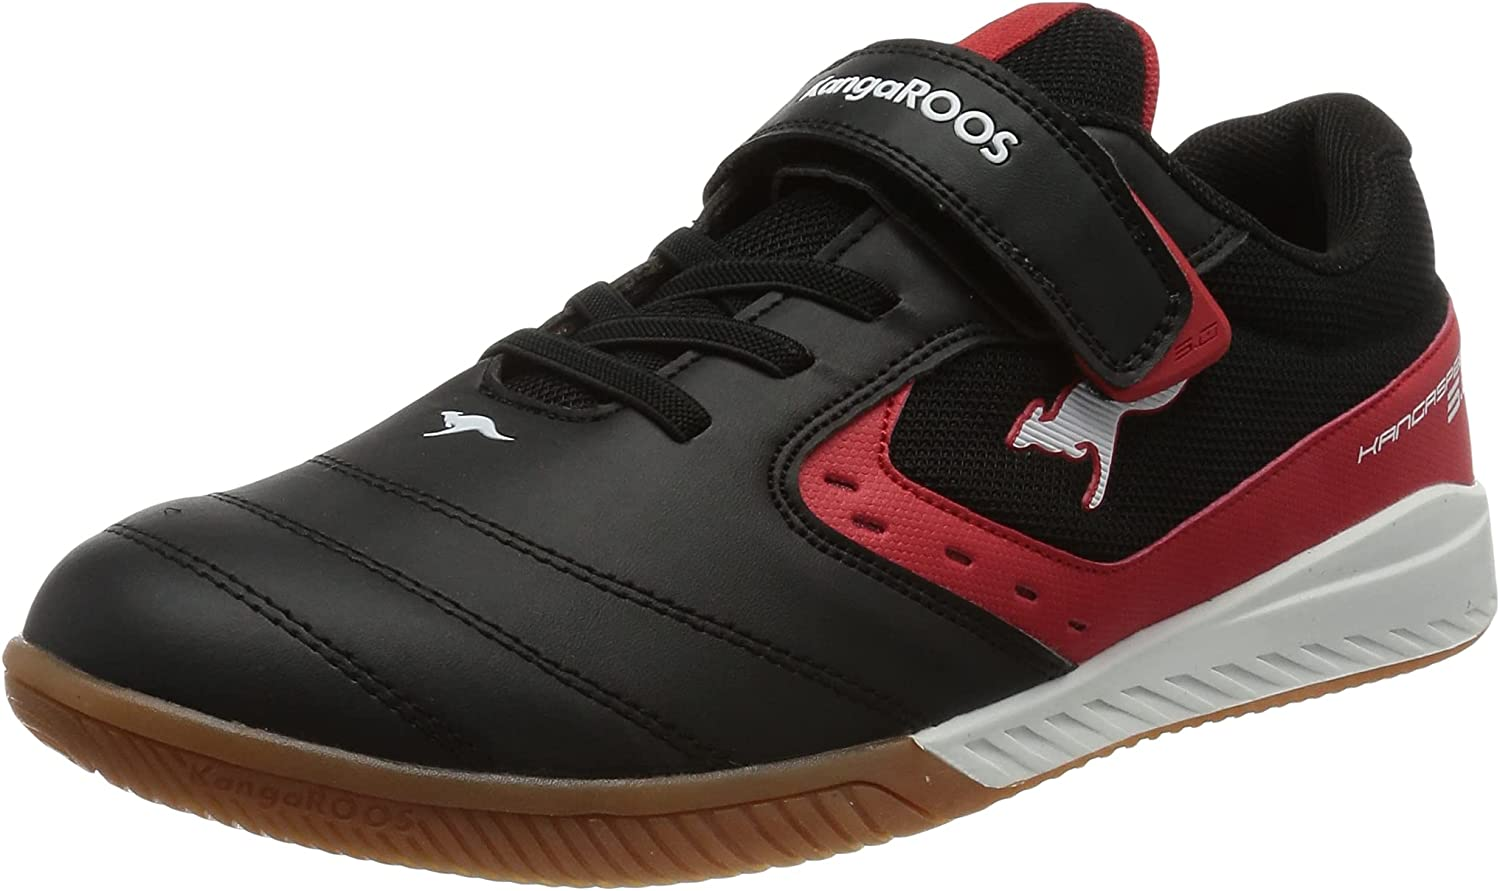 KangaROOS Unisex-Adult Sneakers Our shop most popular Low-top Charlotte Mall